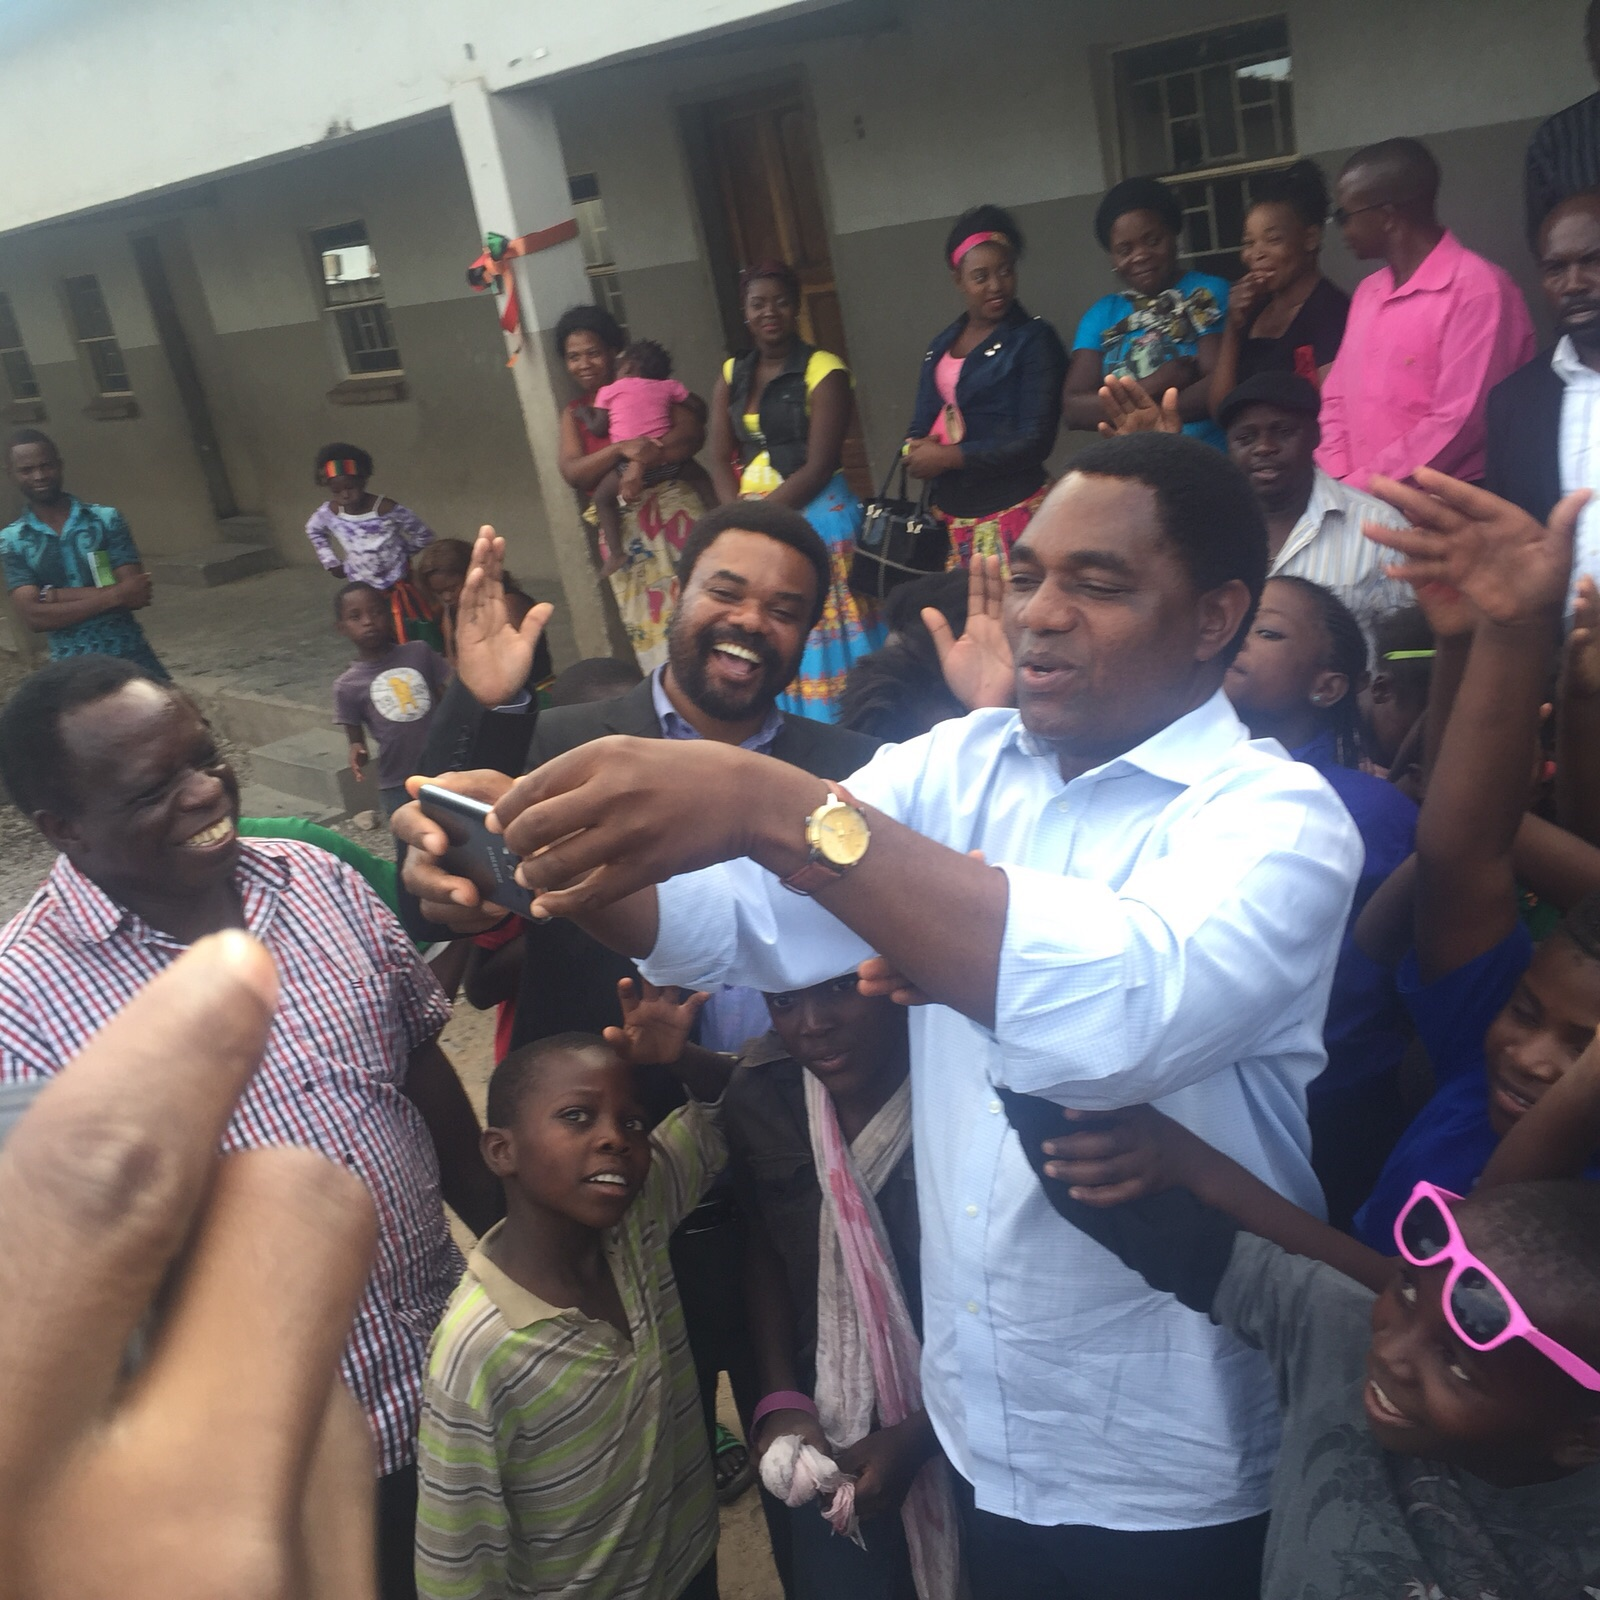 Take independence seriously, says HH as he celebrates with orphans